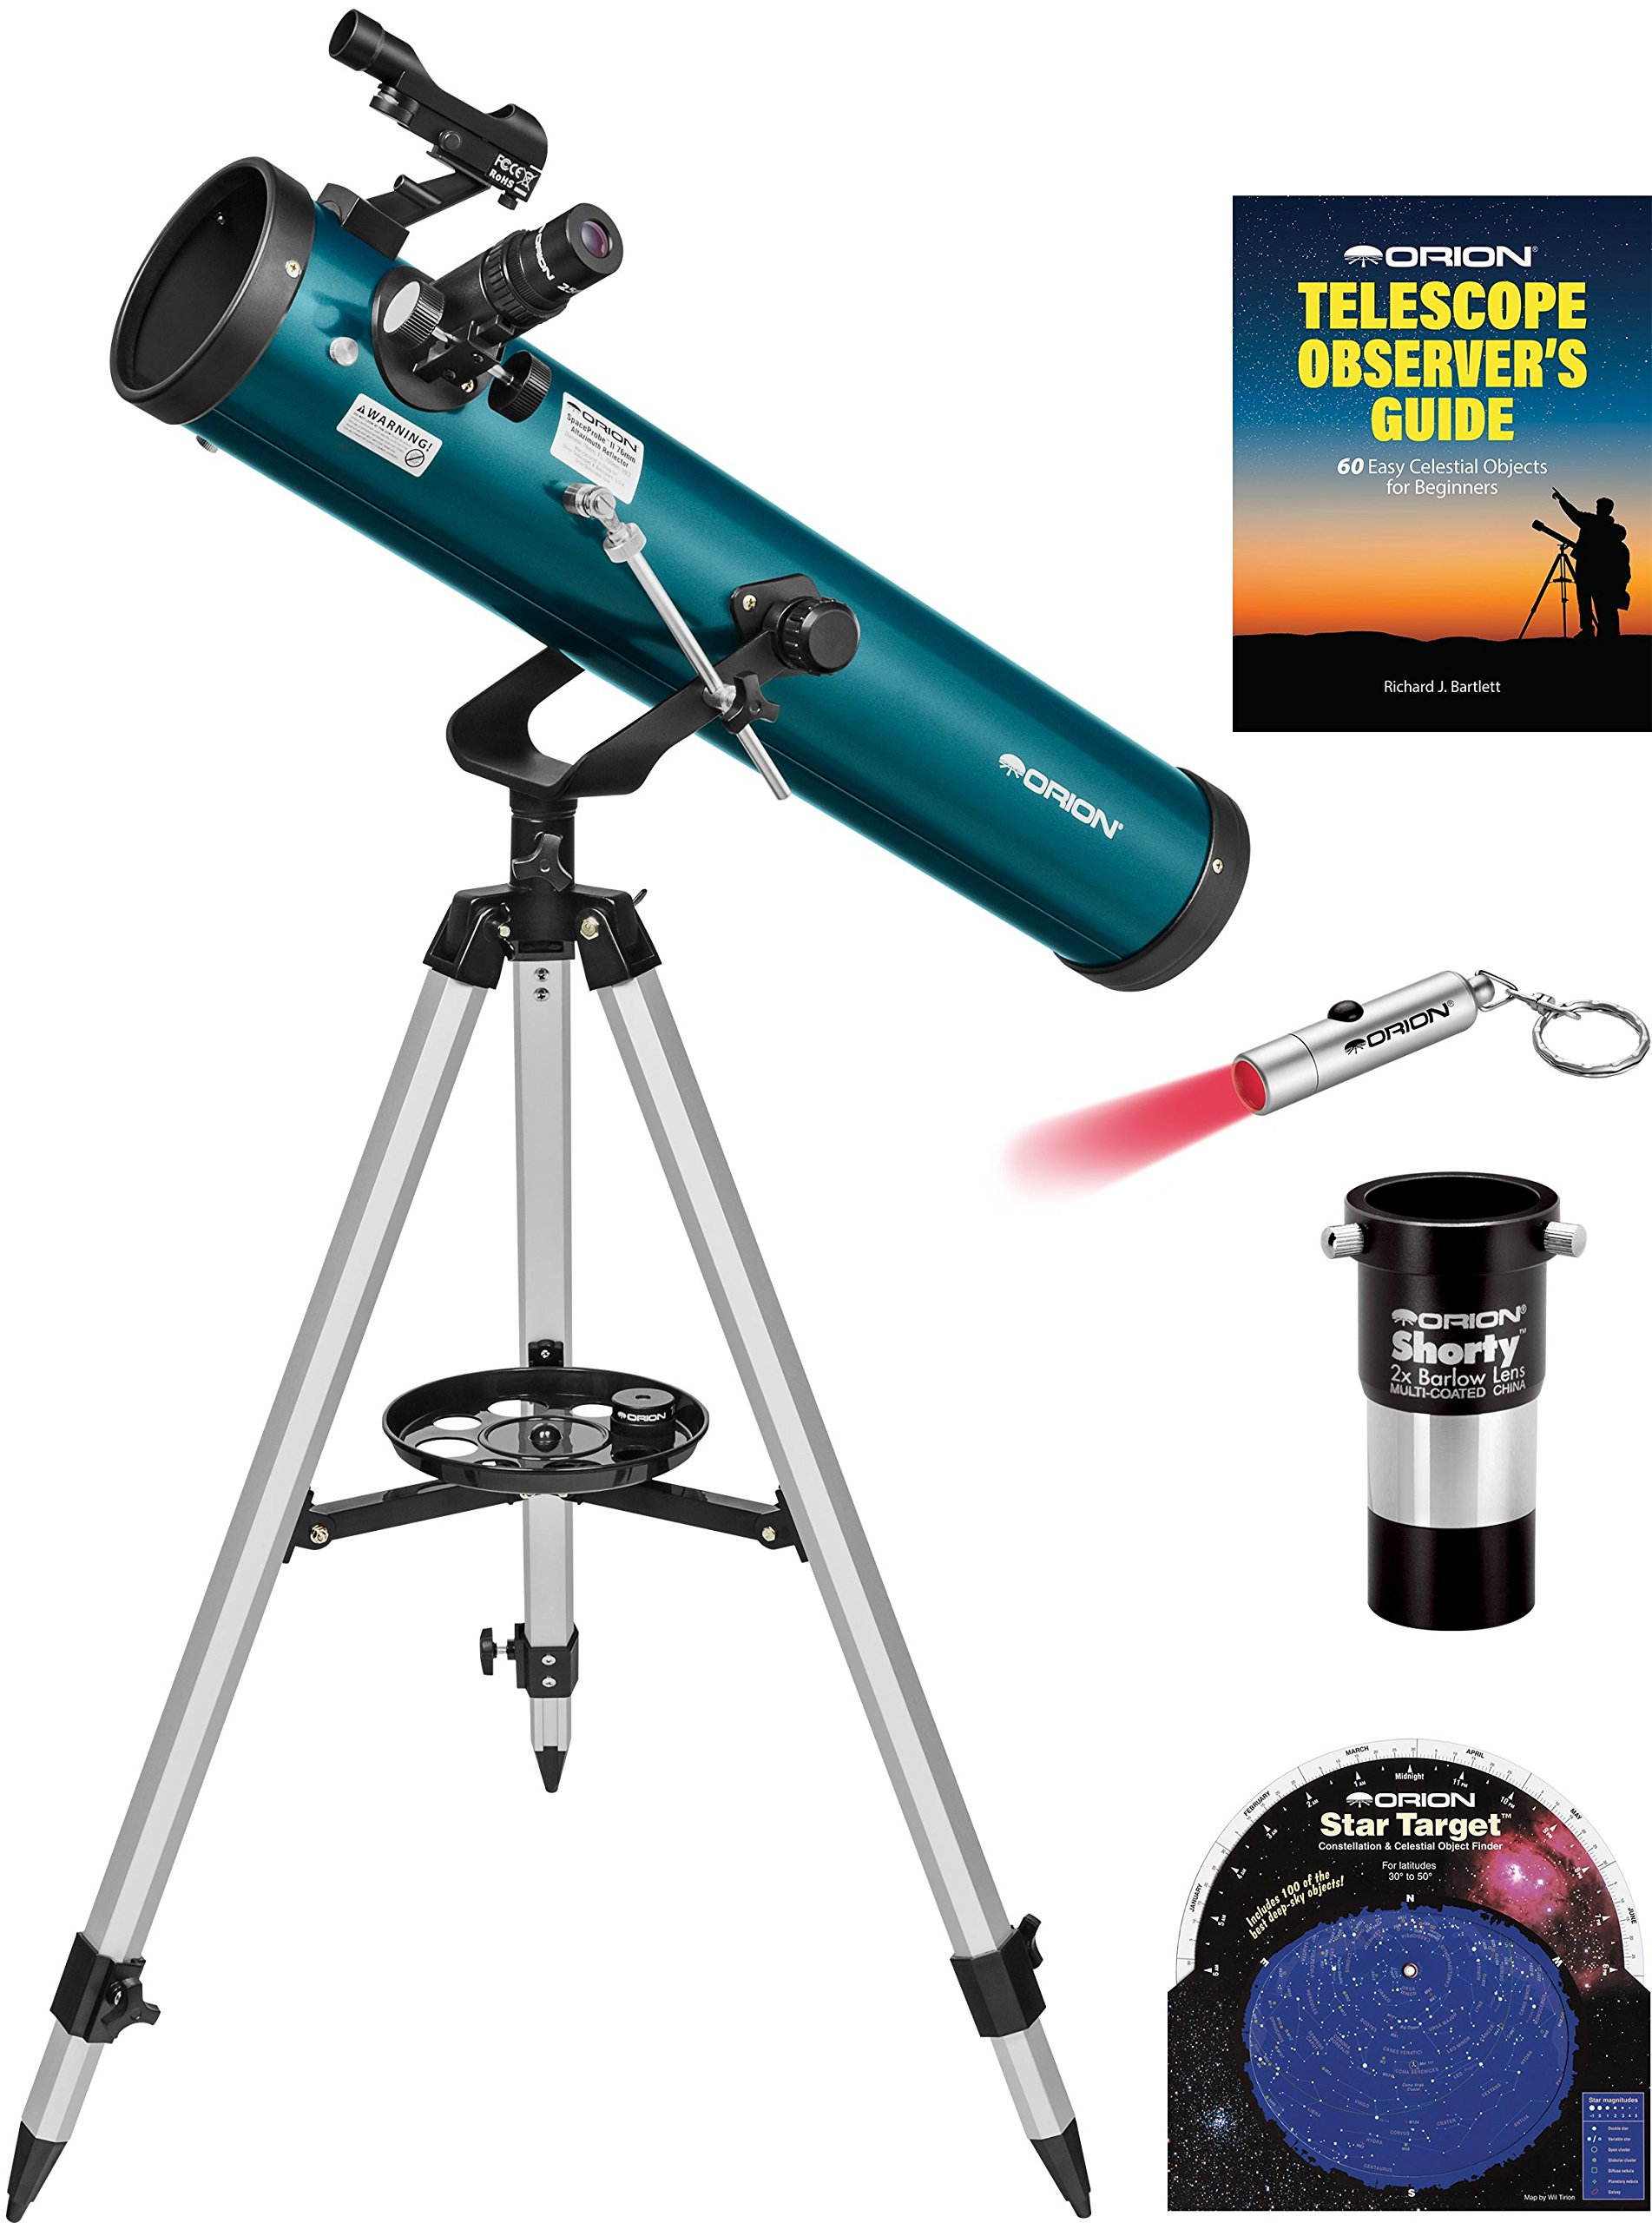 Orion SpaceProbe II 76mm Altazimuth Reflector Telescope Kit by Orion (Image #1)